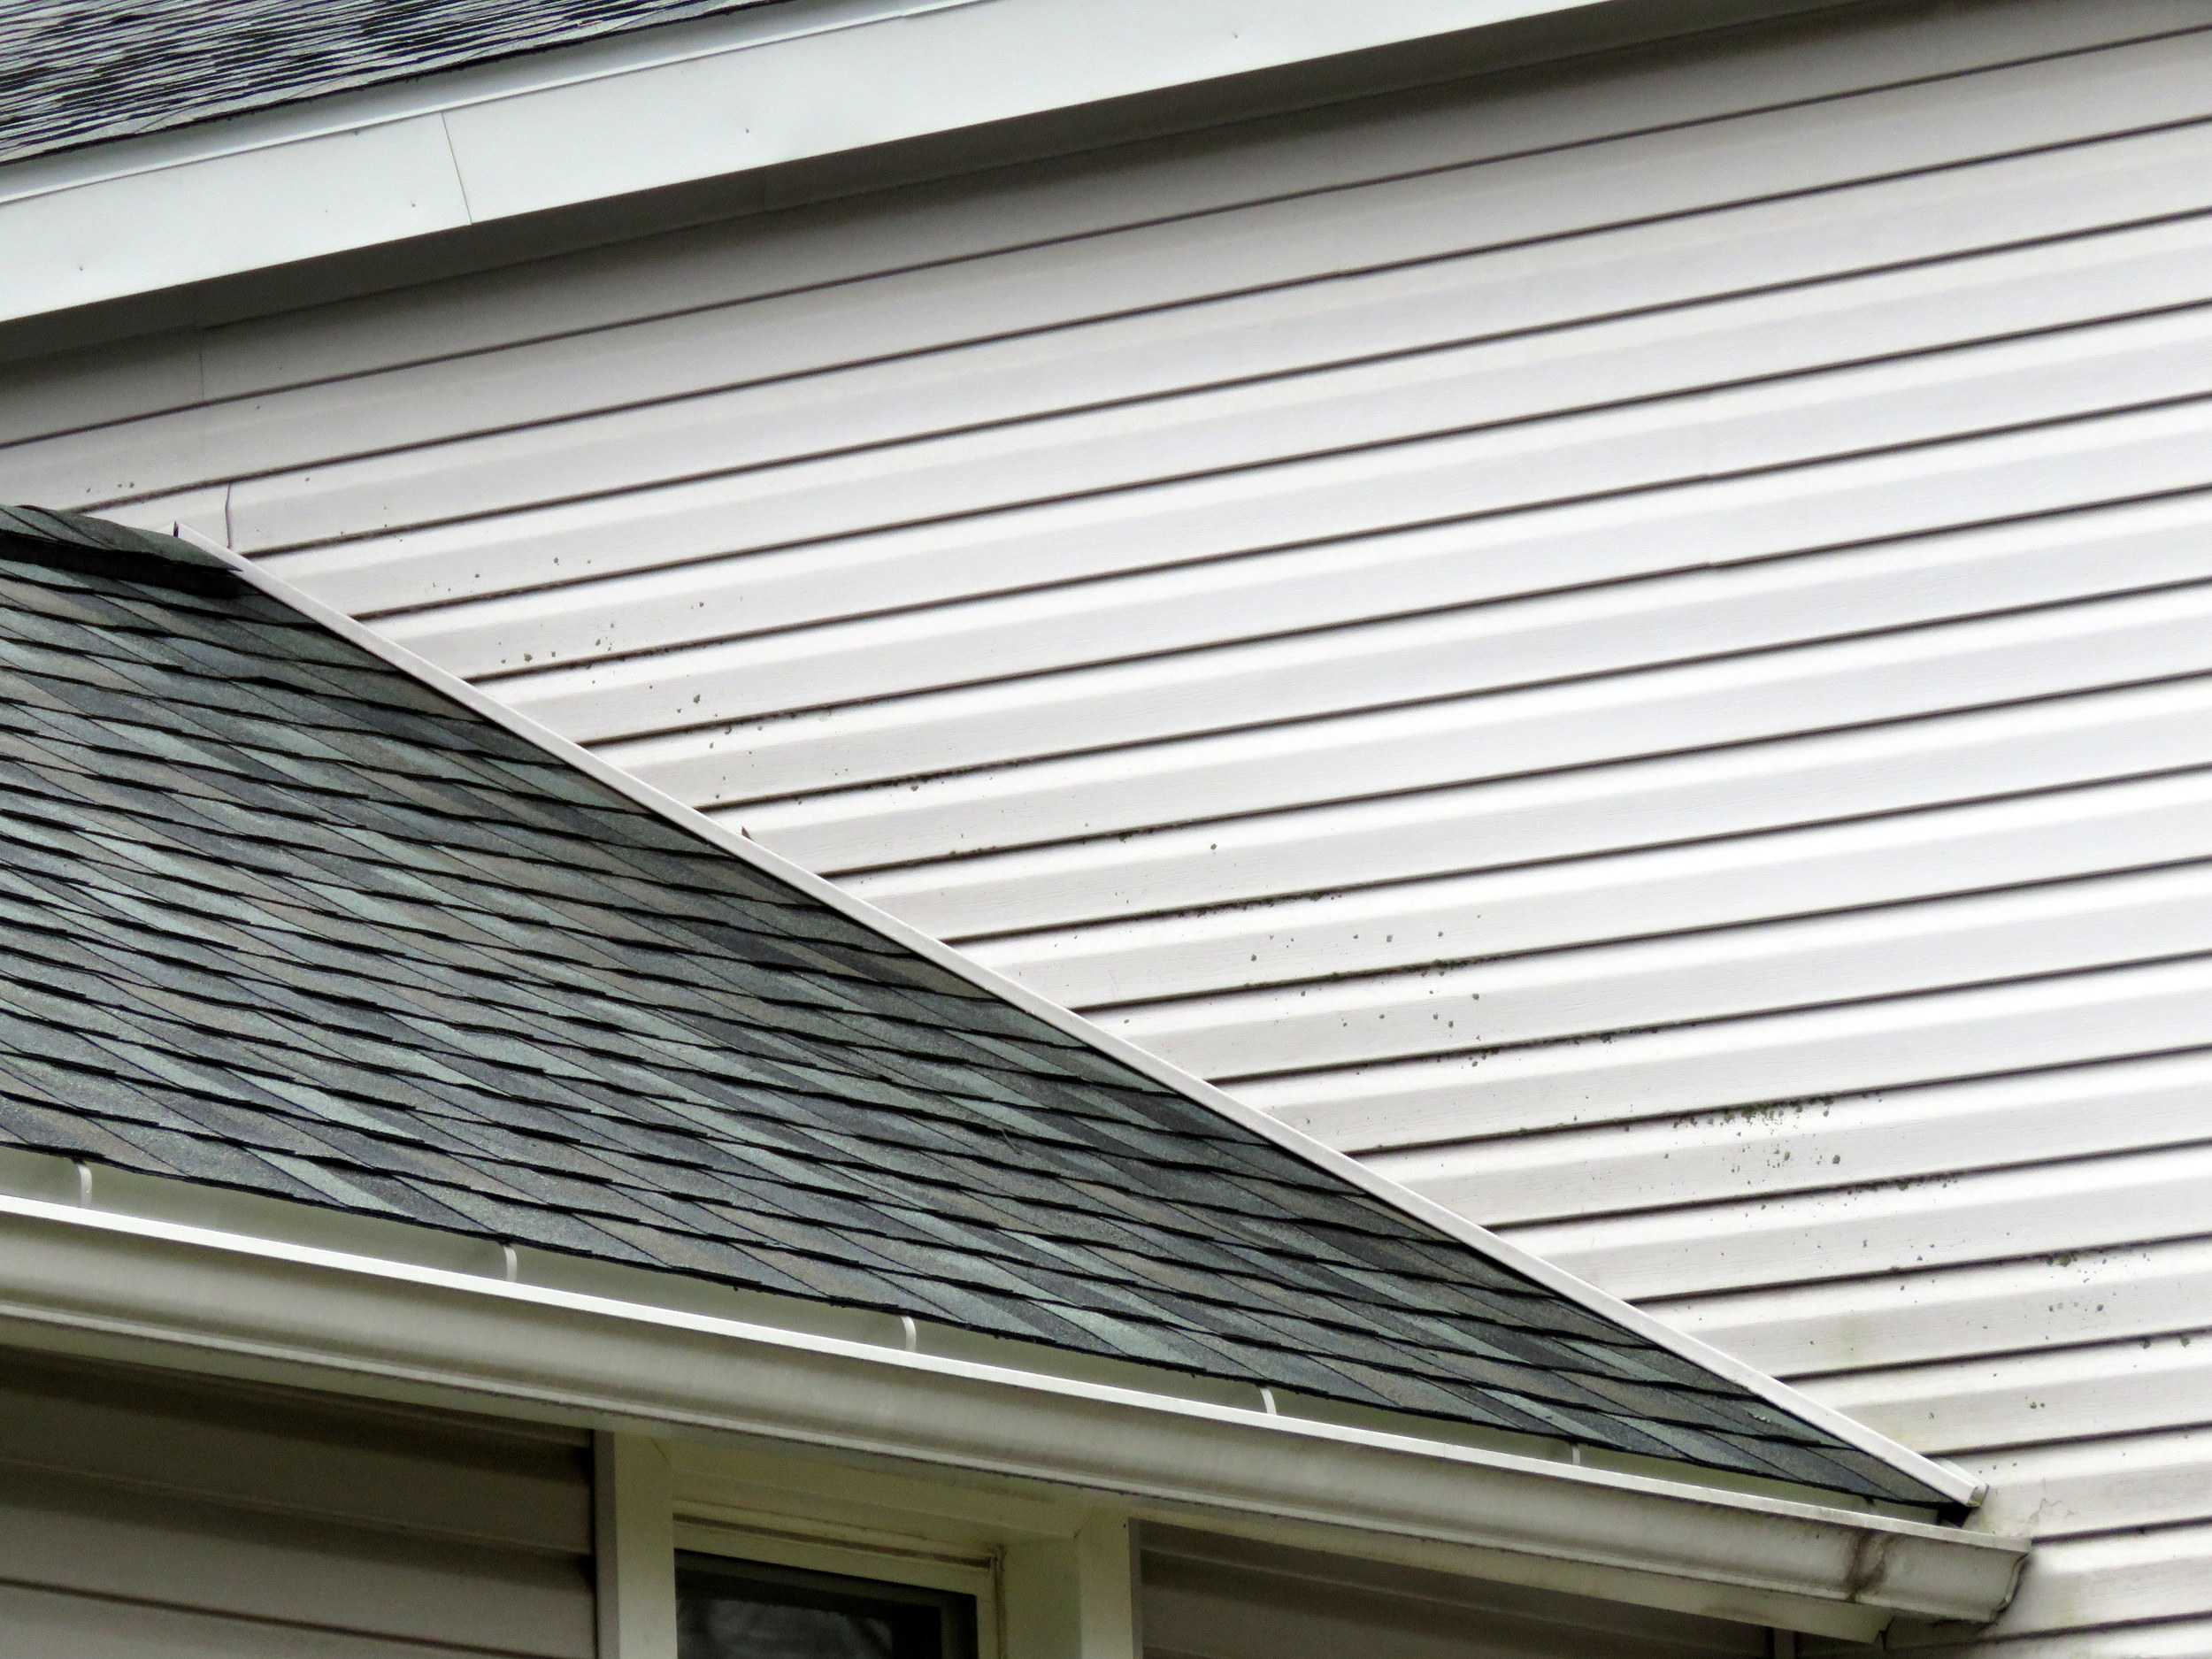 Aluminum siding meets an asphalt shingle roof.